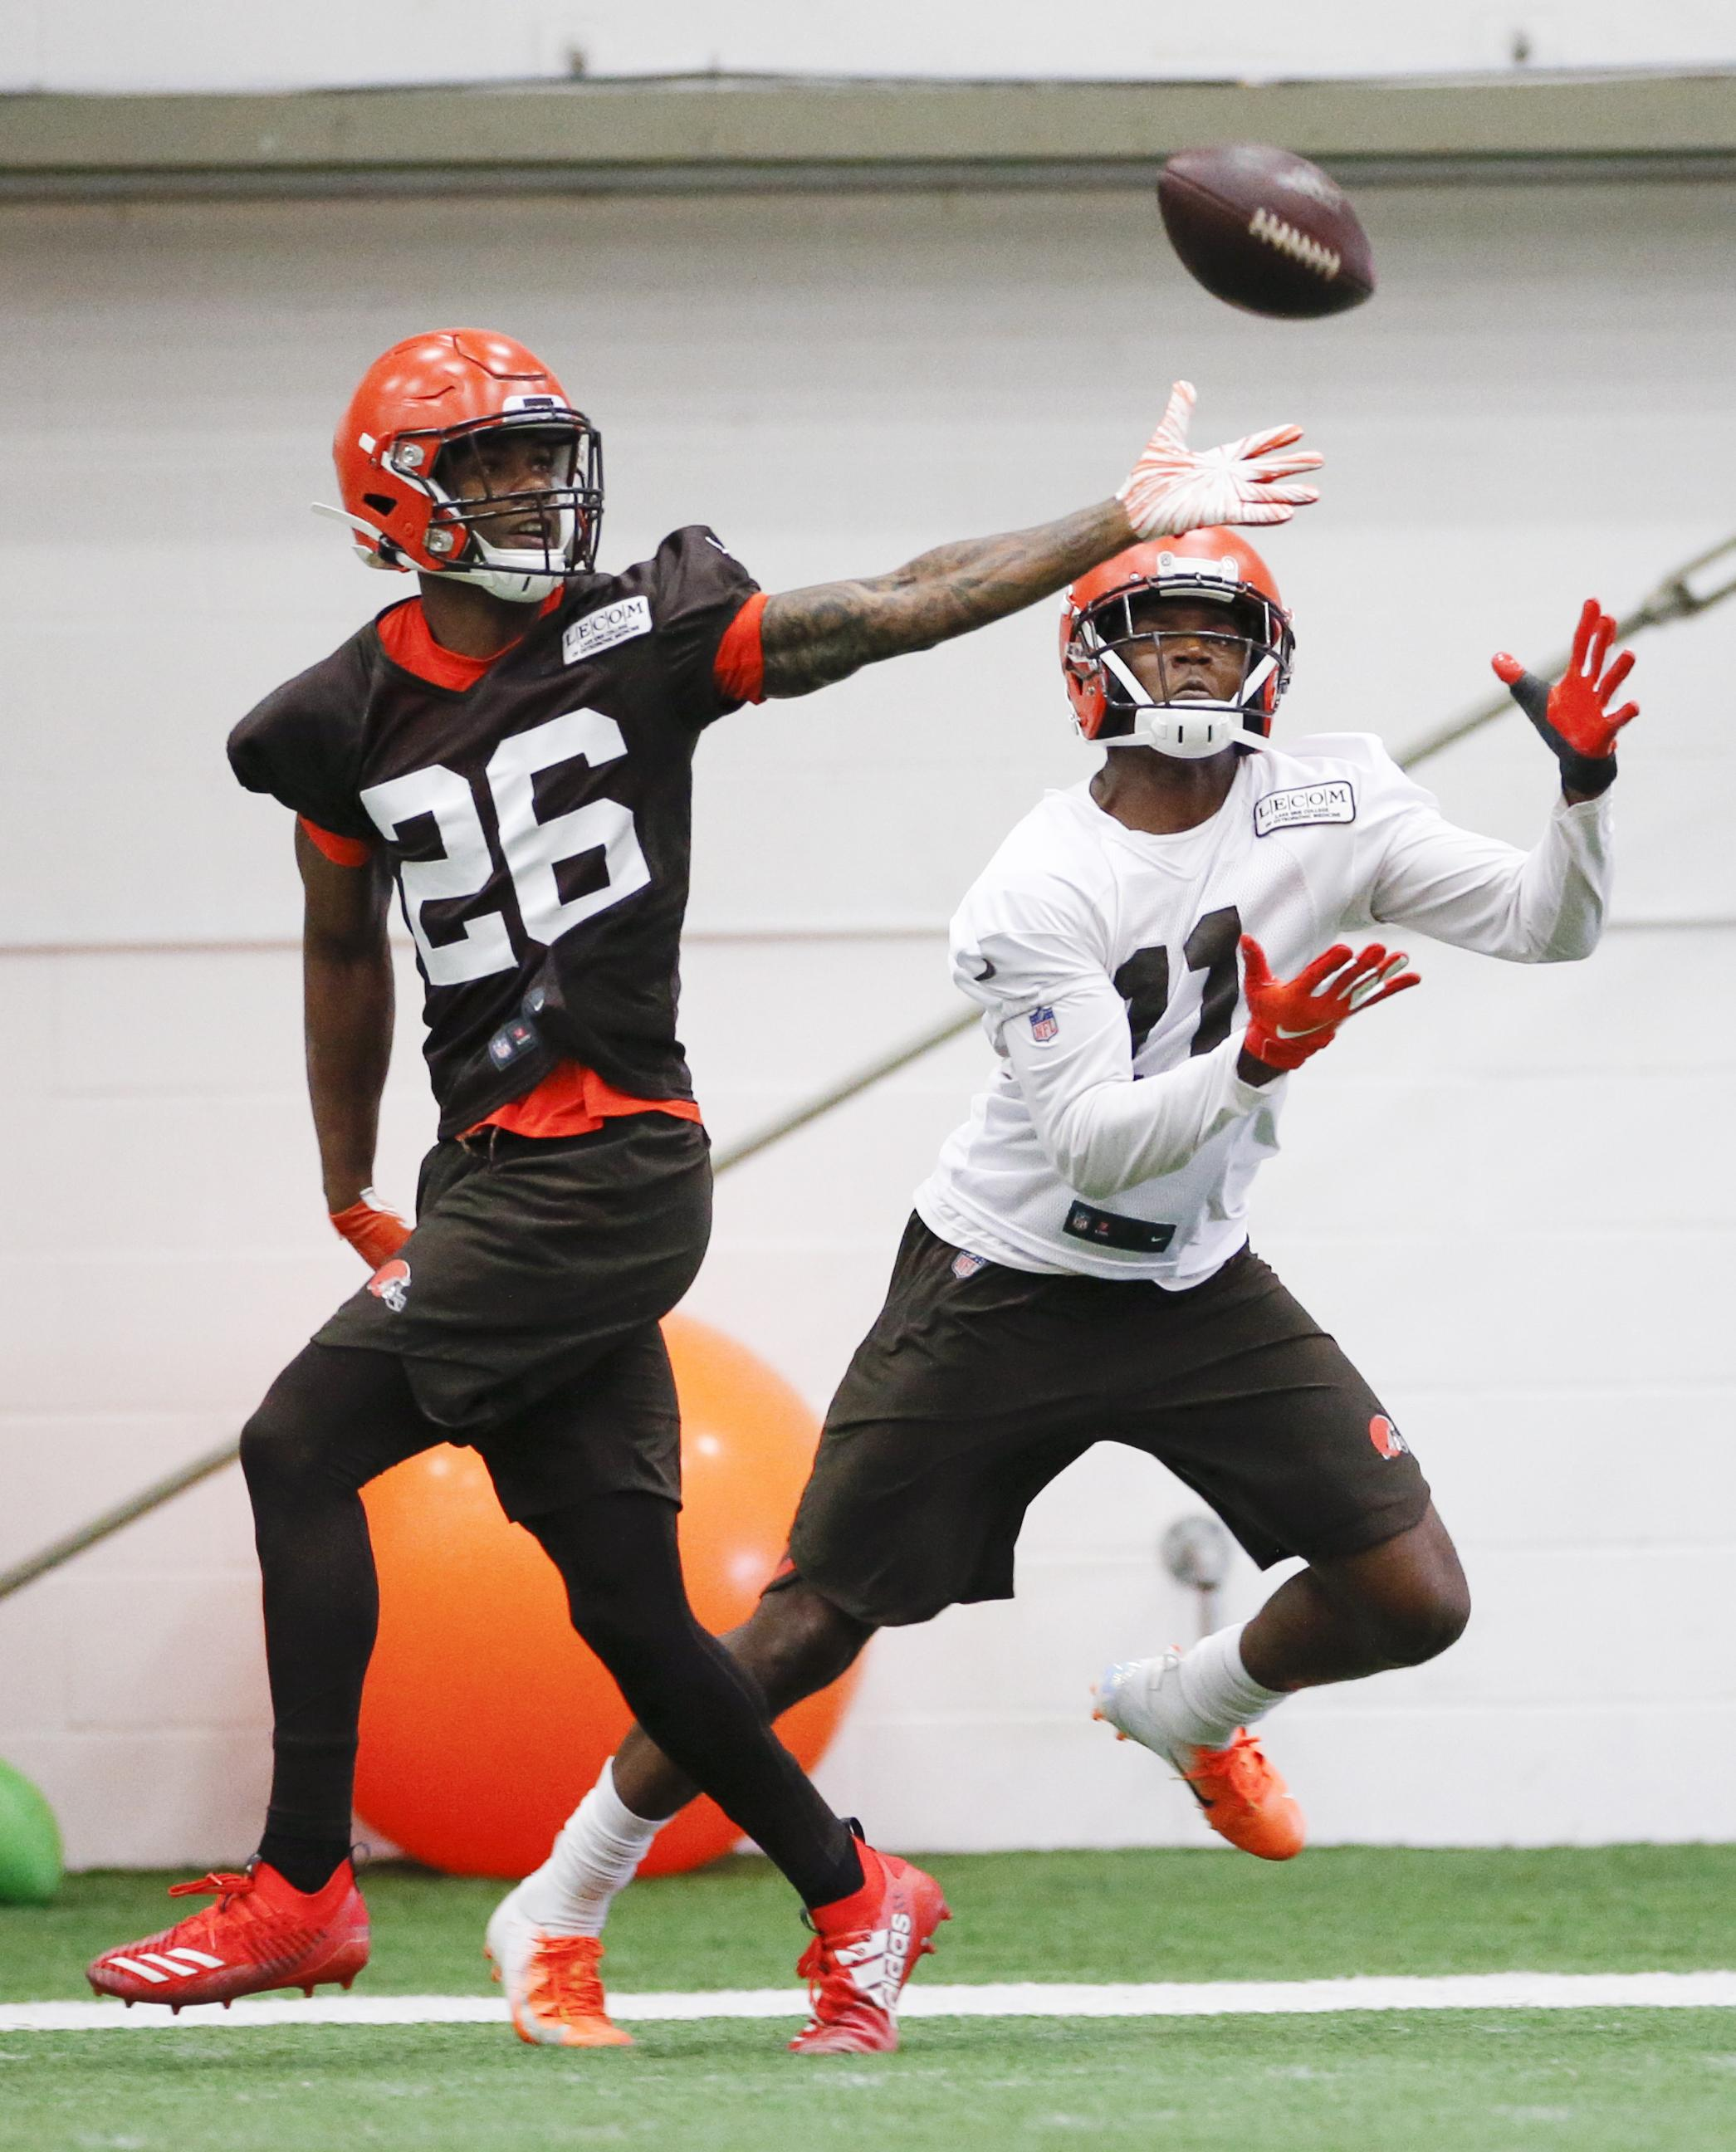 reputable site 79132 3610b Browns rookie Greedy Williams eager to learn from Odell ...